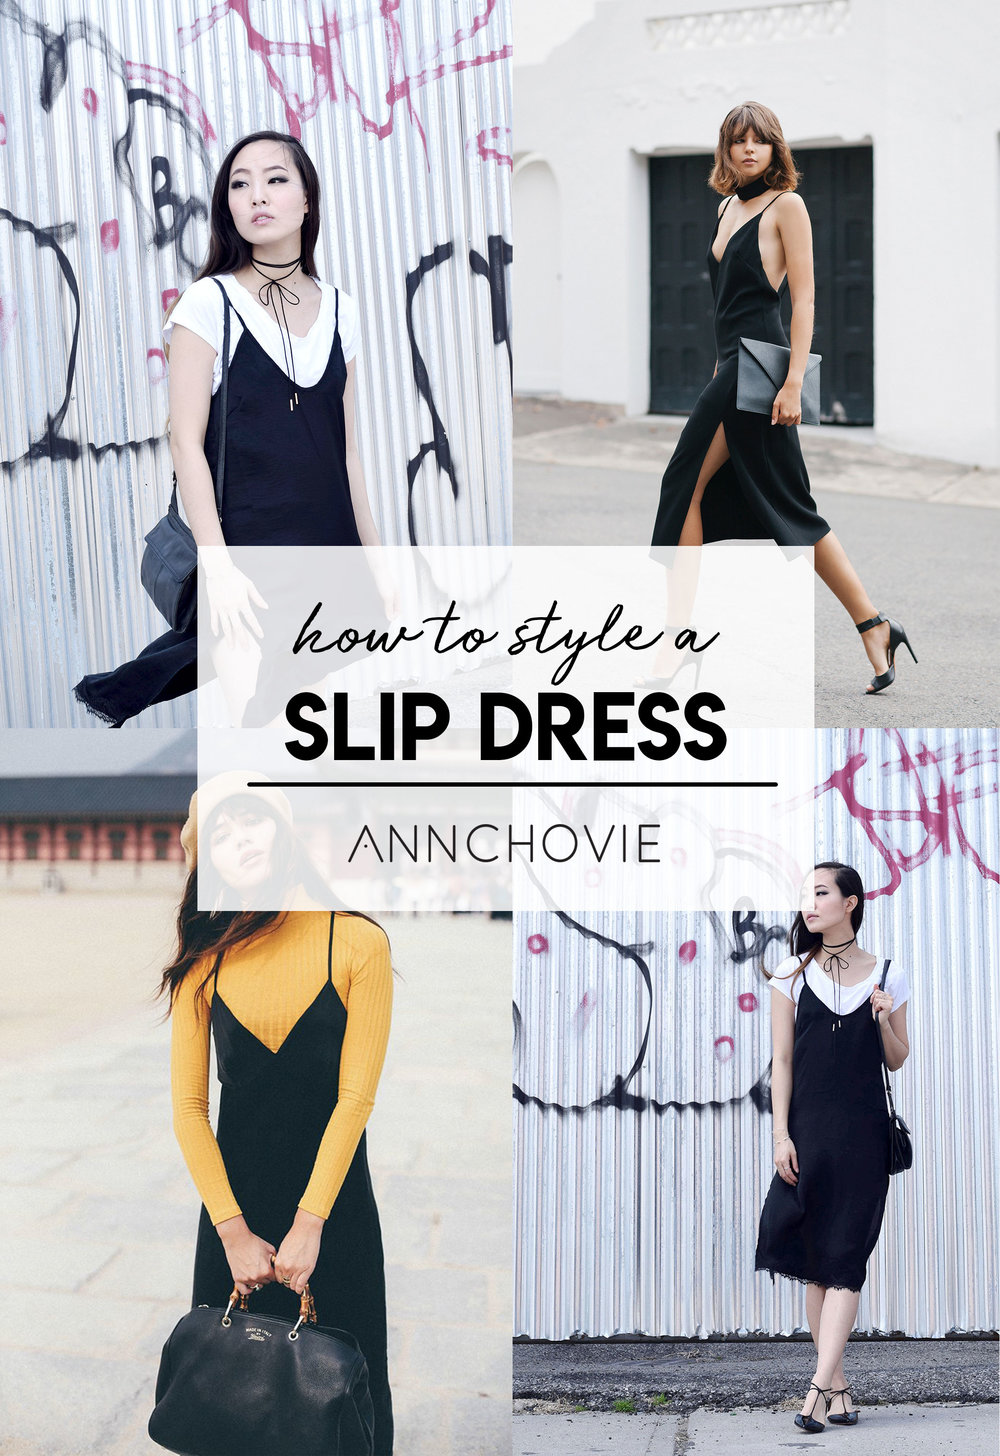 how-to-style-a-slip-dress-pinterest-O.jpg